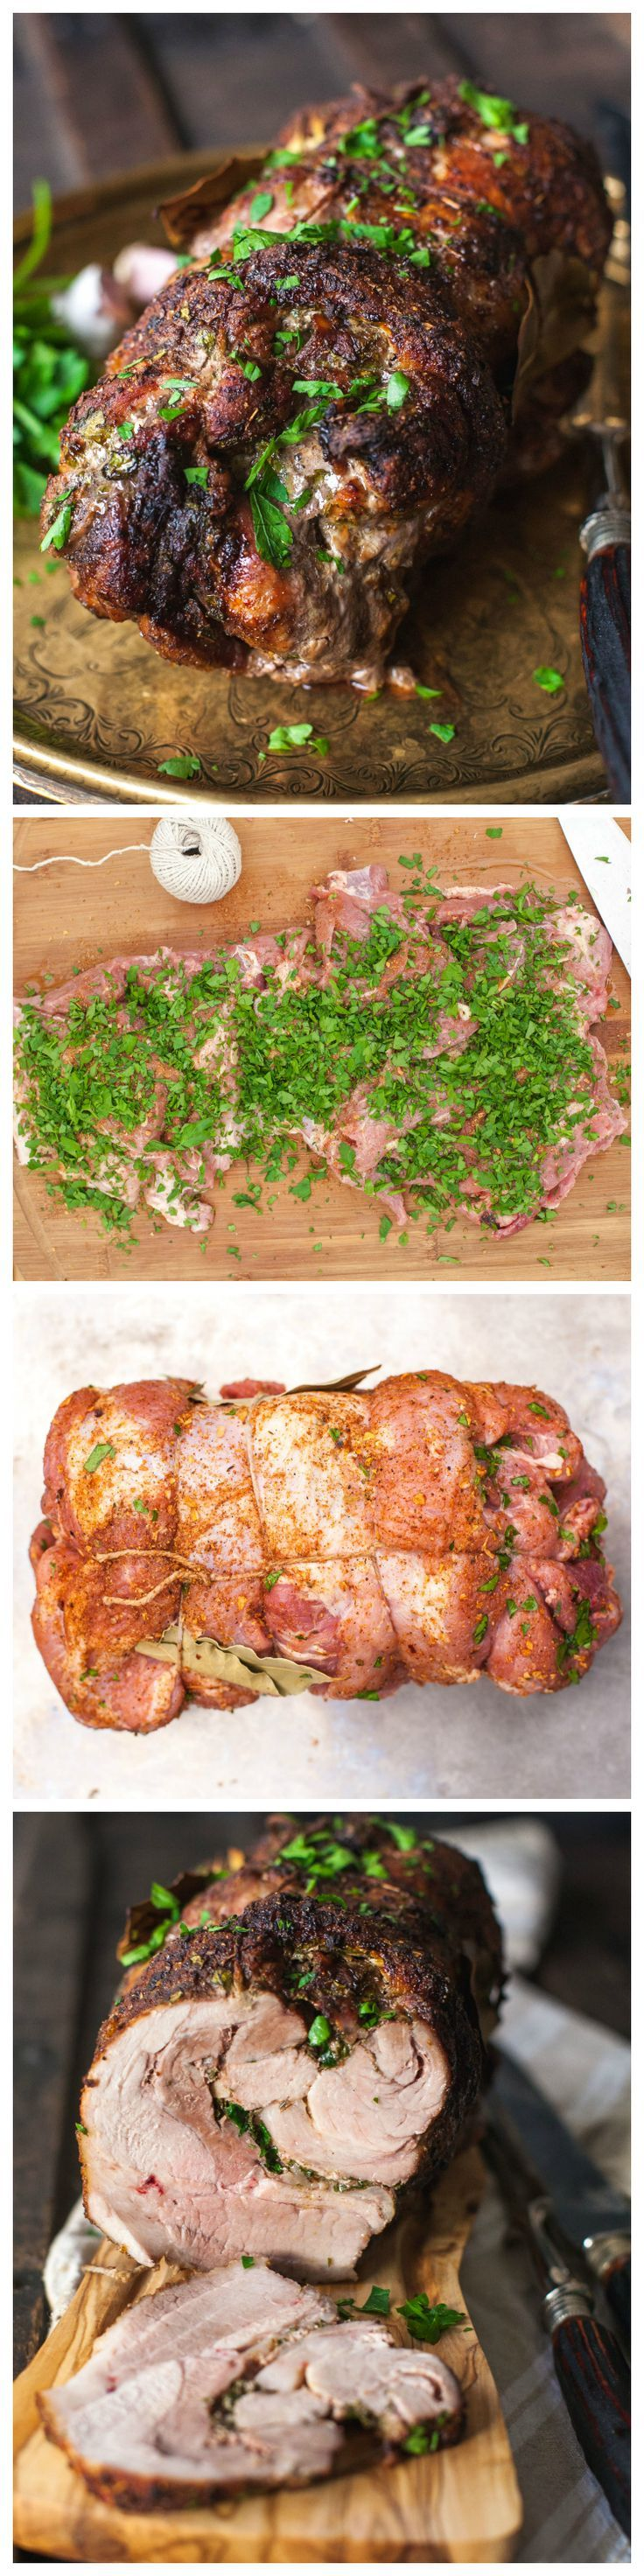 The juiciest pork roast stuffed with herbs and garlic and rubbed with aromatic spices.